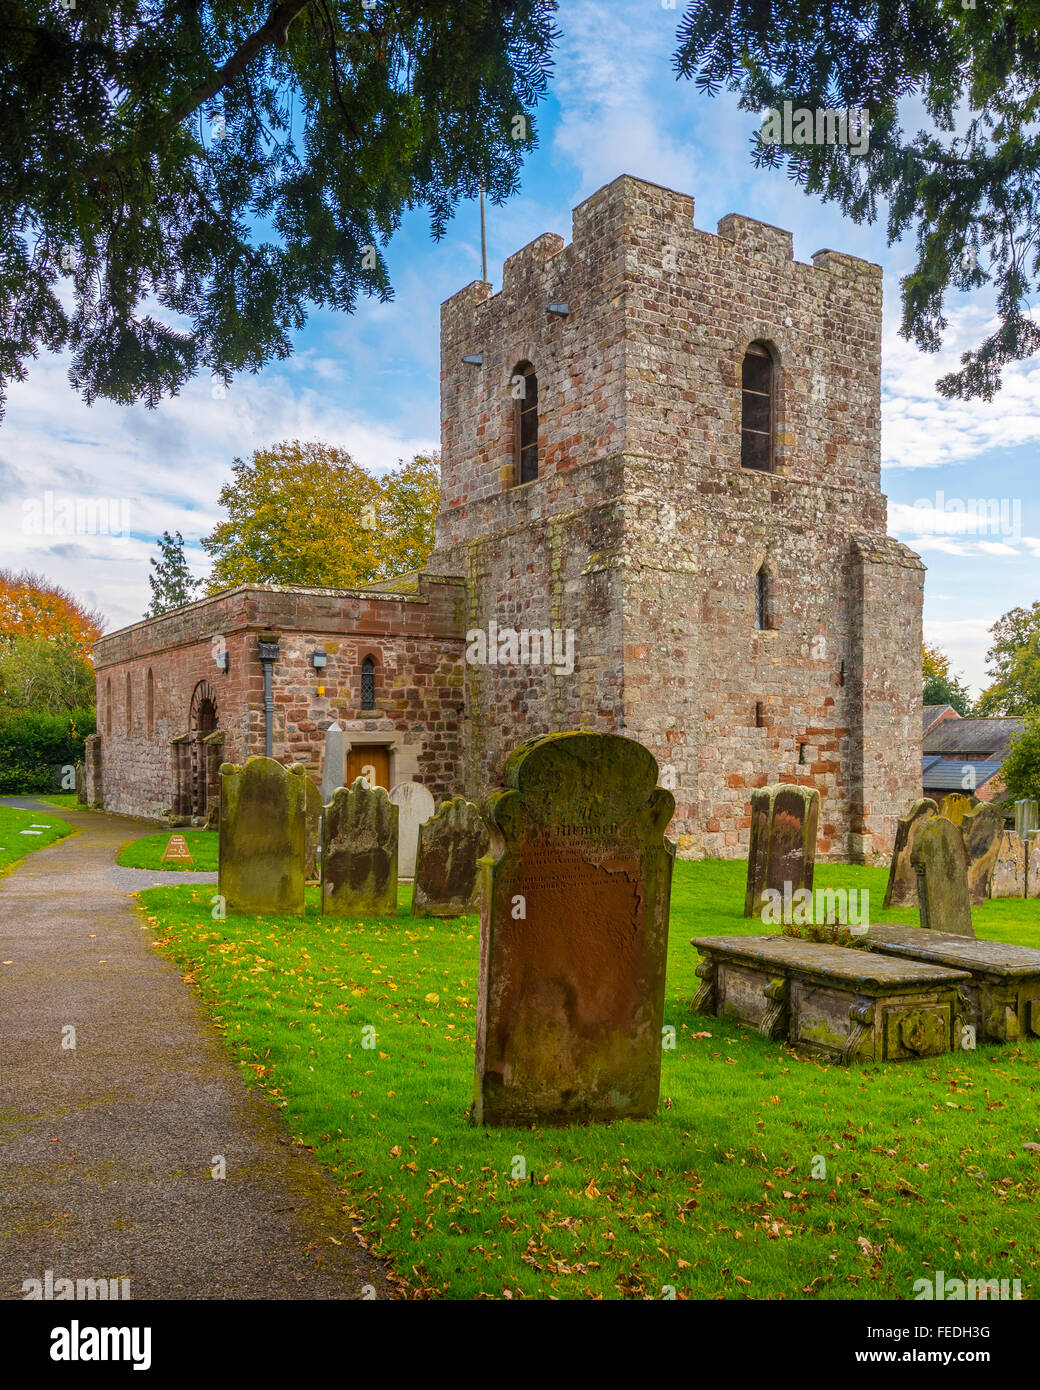 St Michael's Church Burgh-by-Sands Cumbria - Stock Image